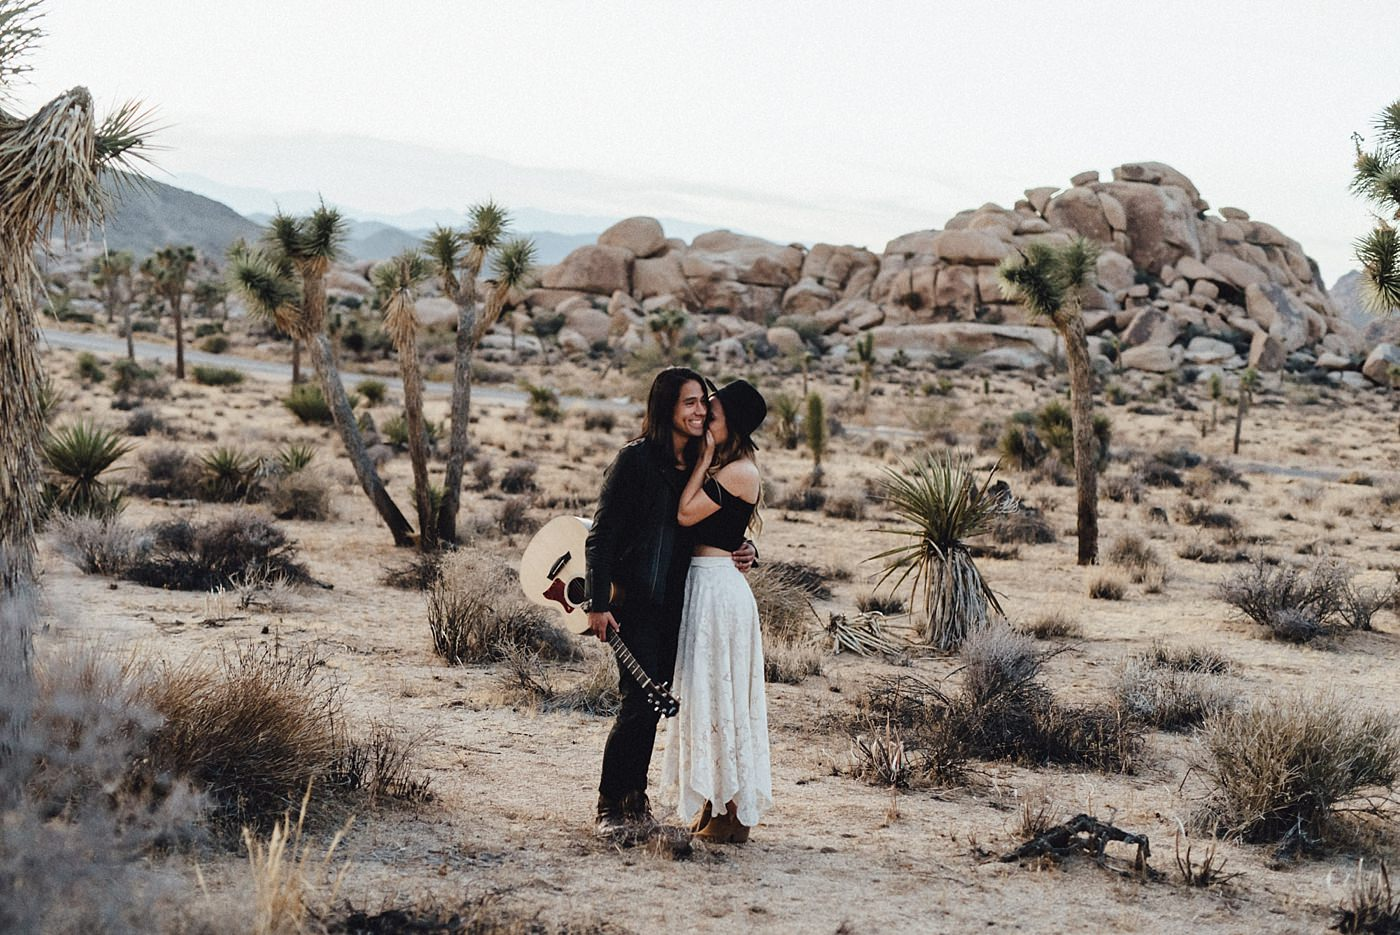 international-elopement-photographer_0208 Kinsey & Josh & Banjo Photographer in Joshuatreeinternational elopement photographer 0208